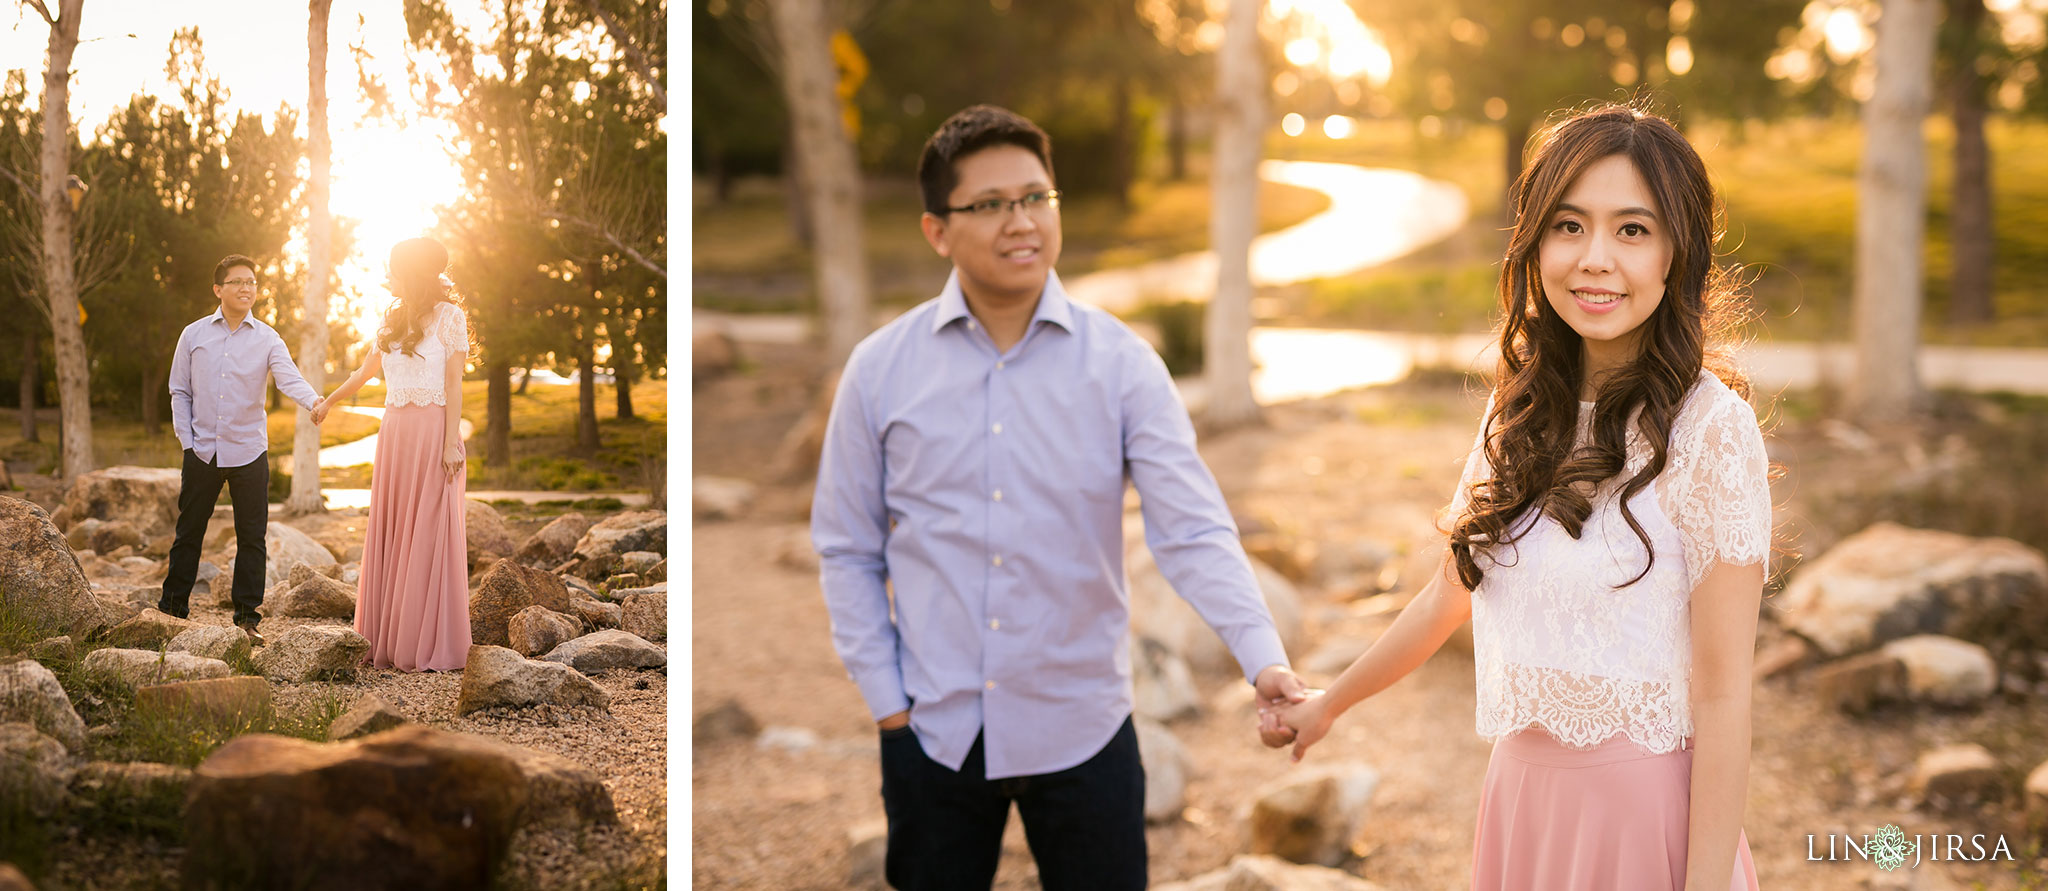 07 jeffrey open space orange county engagement photography